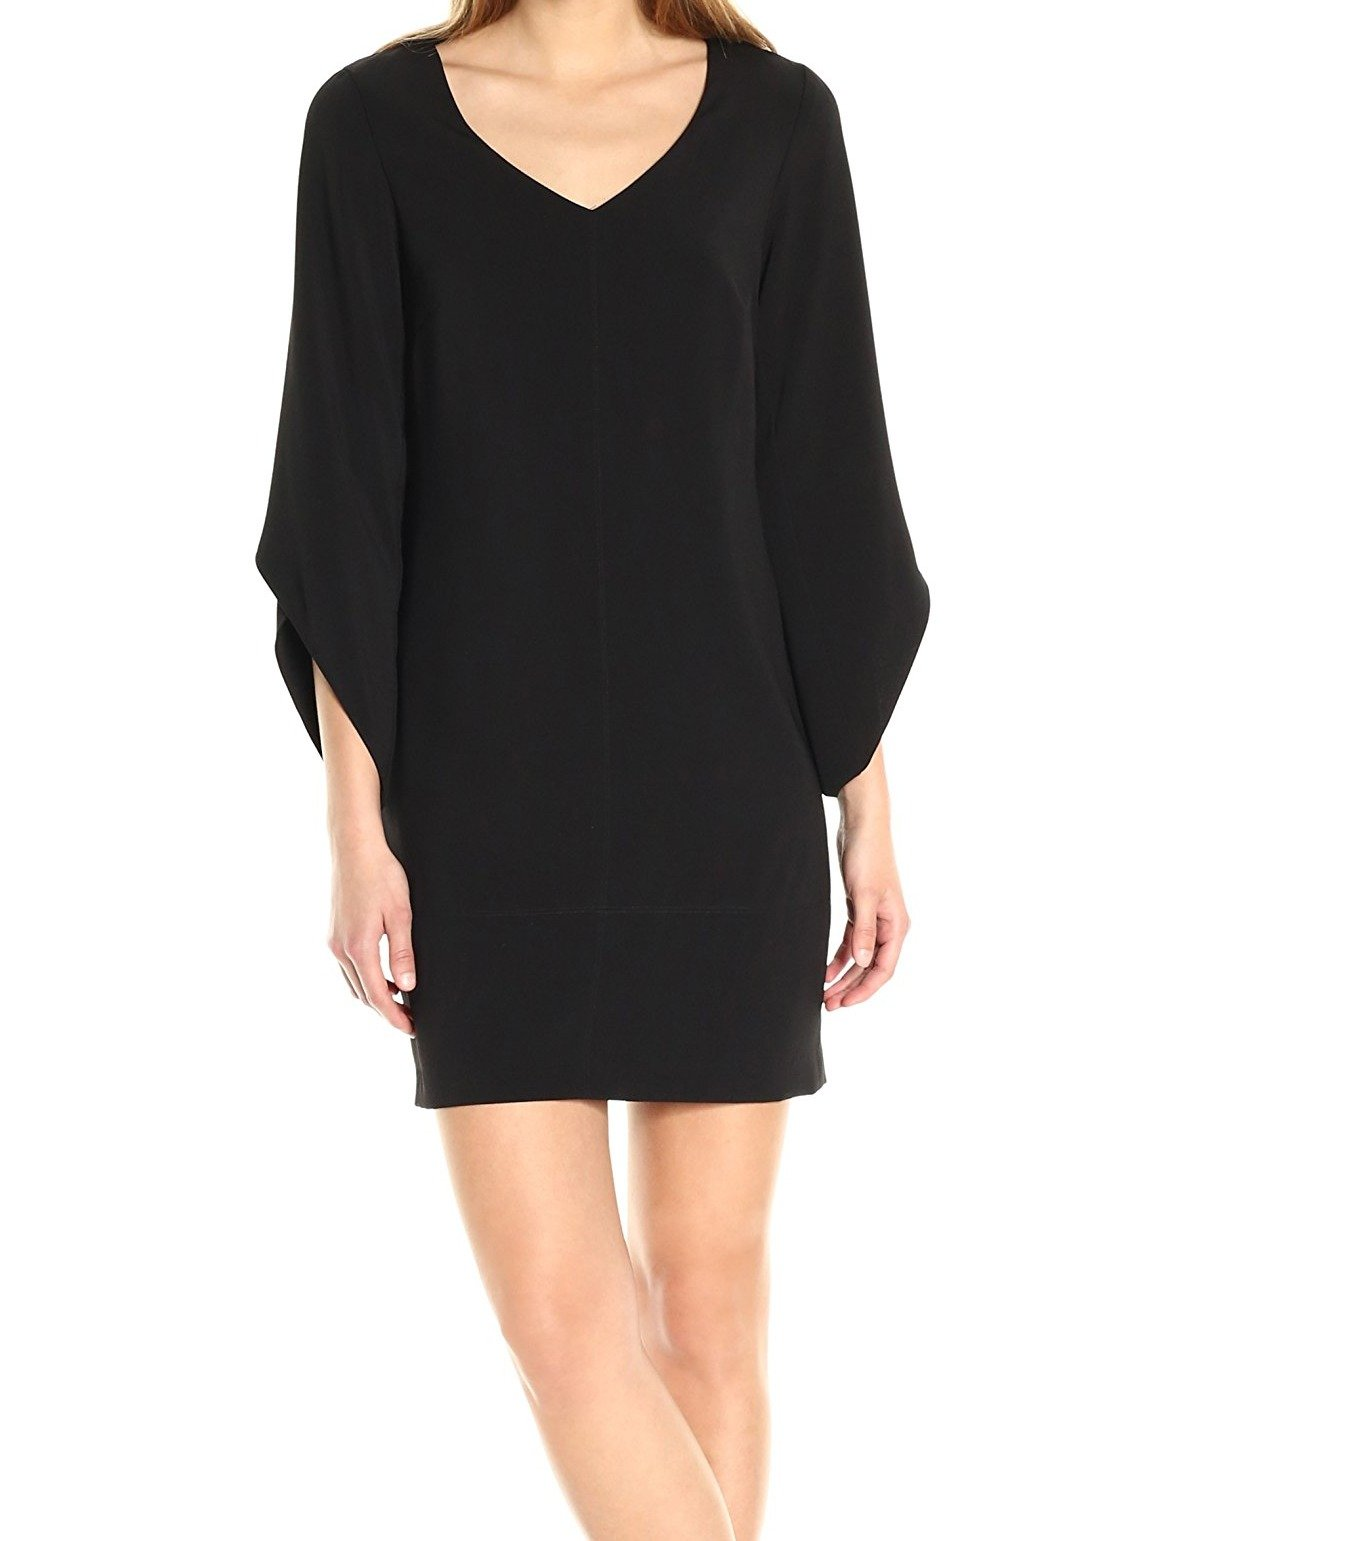 Laundry by Shelli Segal Women's Tulip Sleeve Crepe T Body, Black, 10